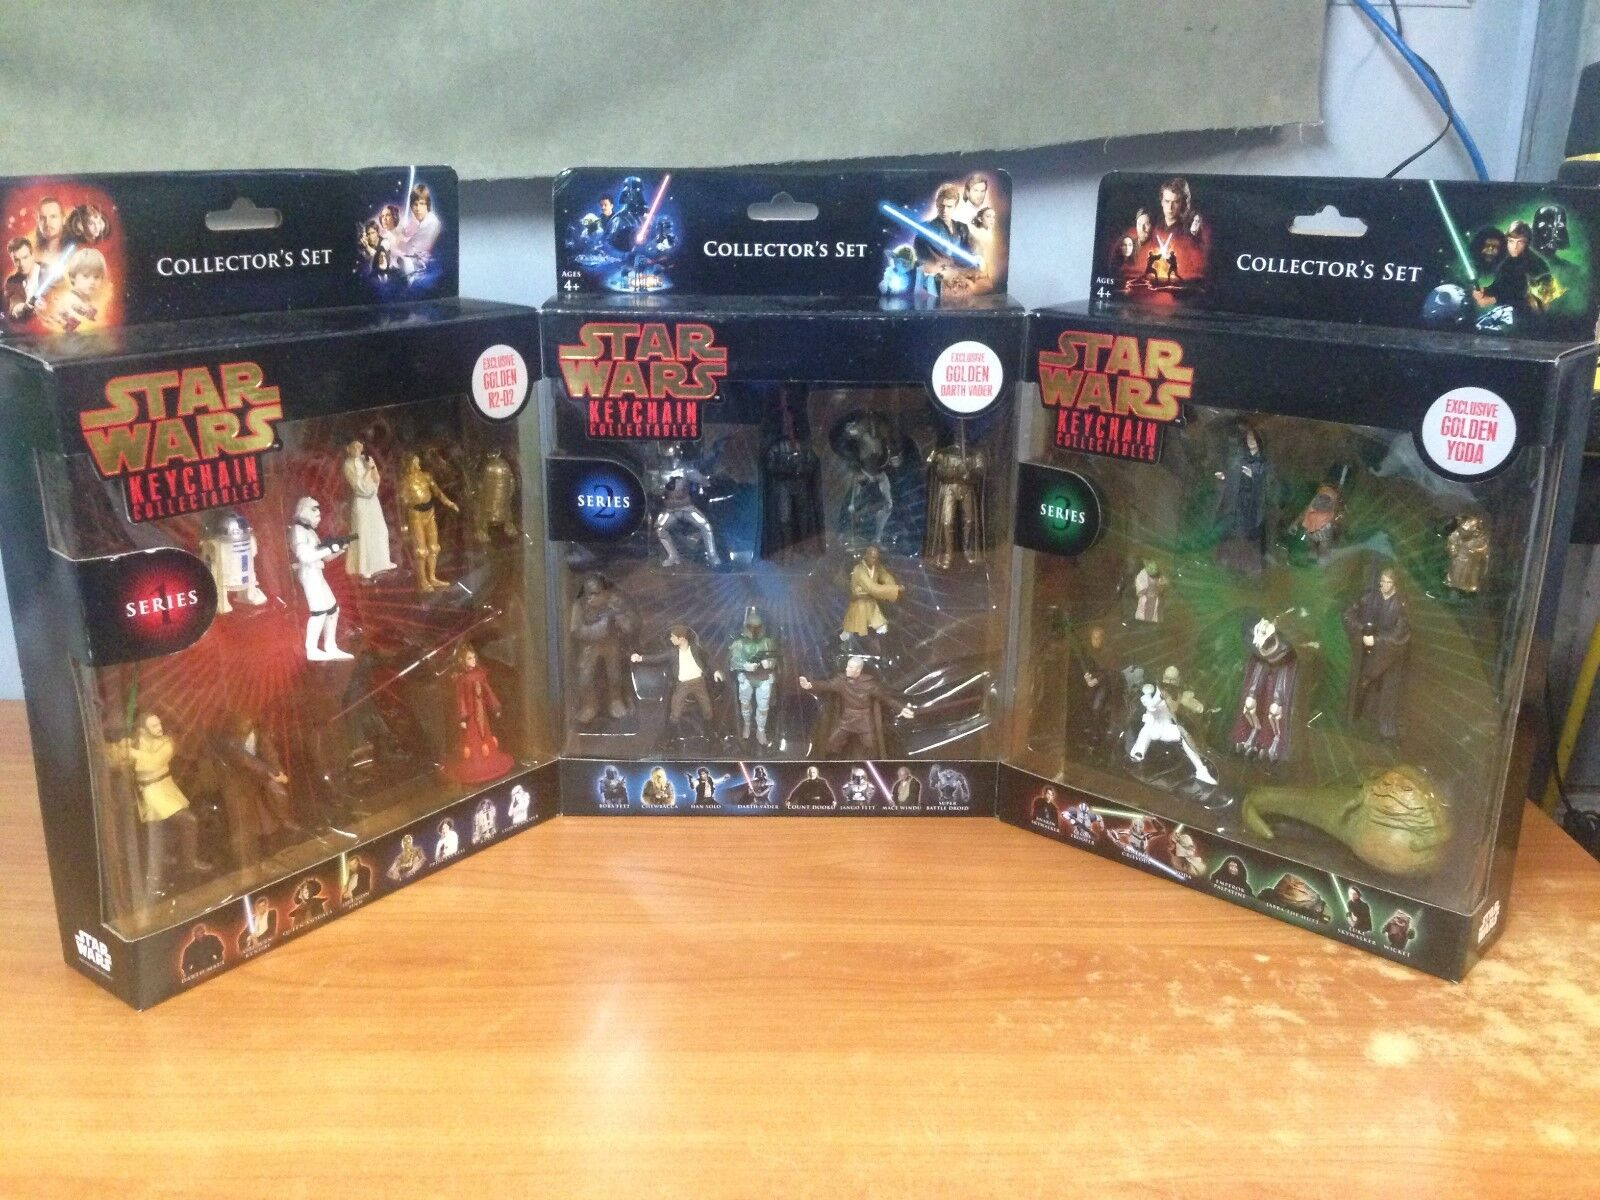 Star Wars Keychain Collection Series 1,2,3 with Exclusive Gold Yoda,Darth,R2-D2